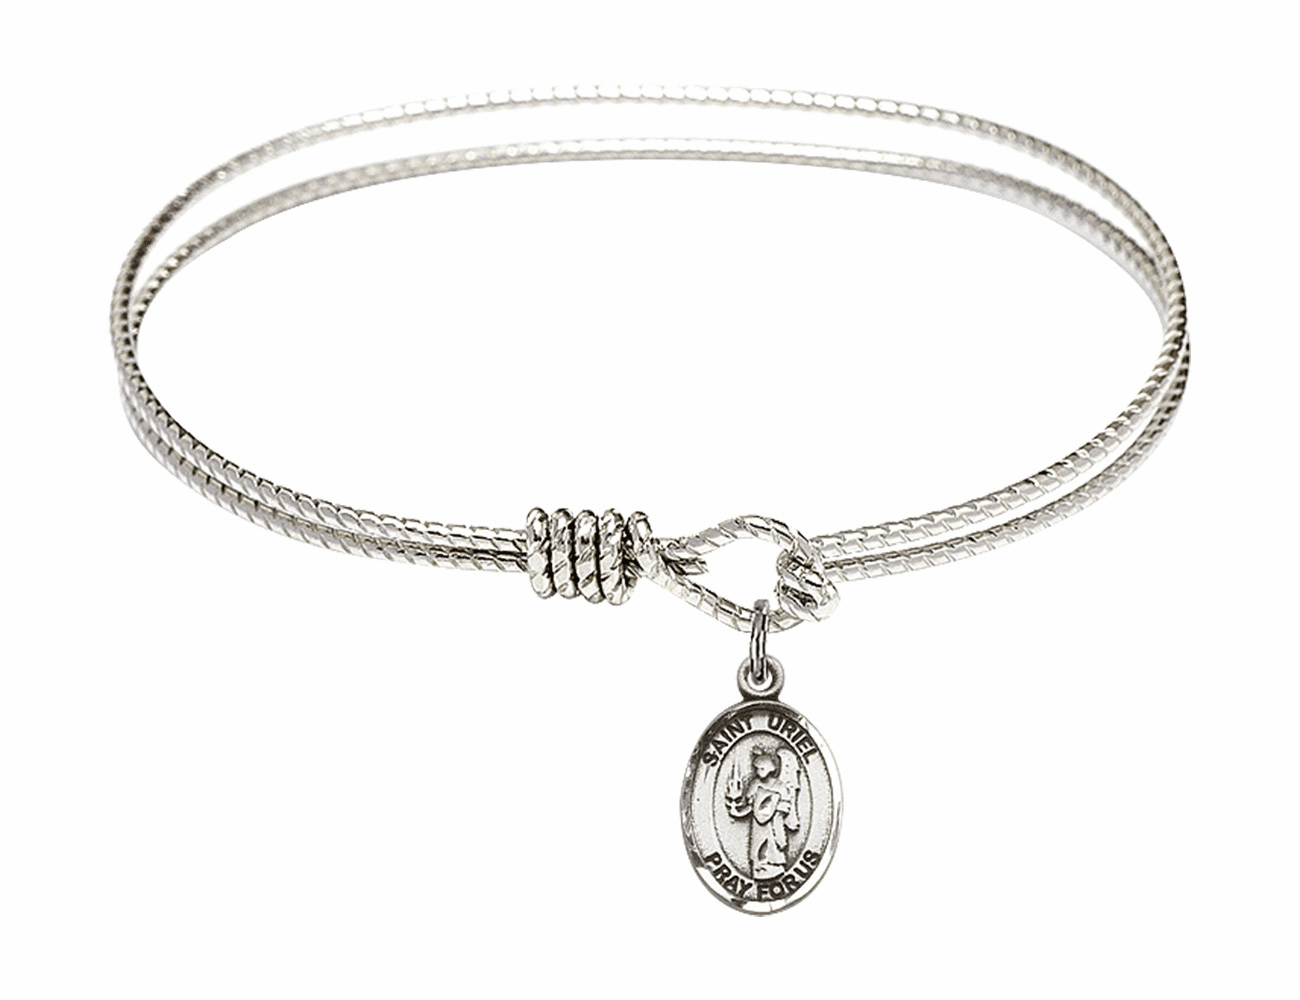 St Uriel the Archangel Textured Bangle w/Sterling Charm Bracelet by Bliss